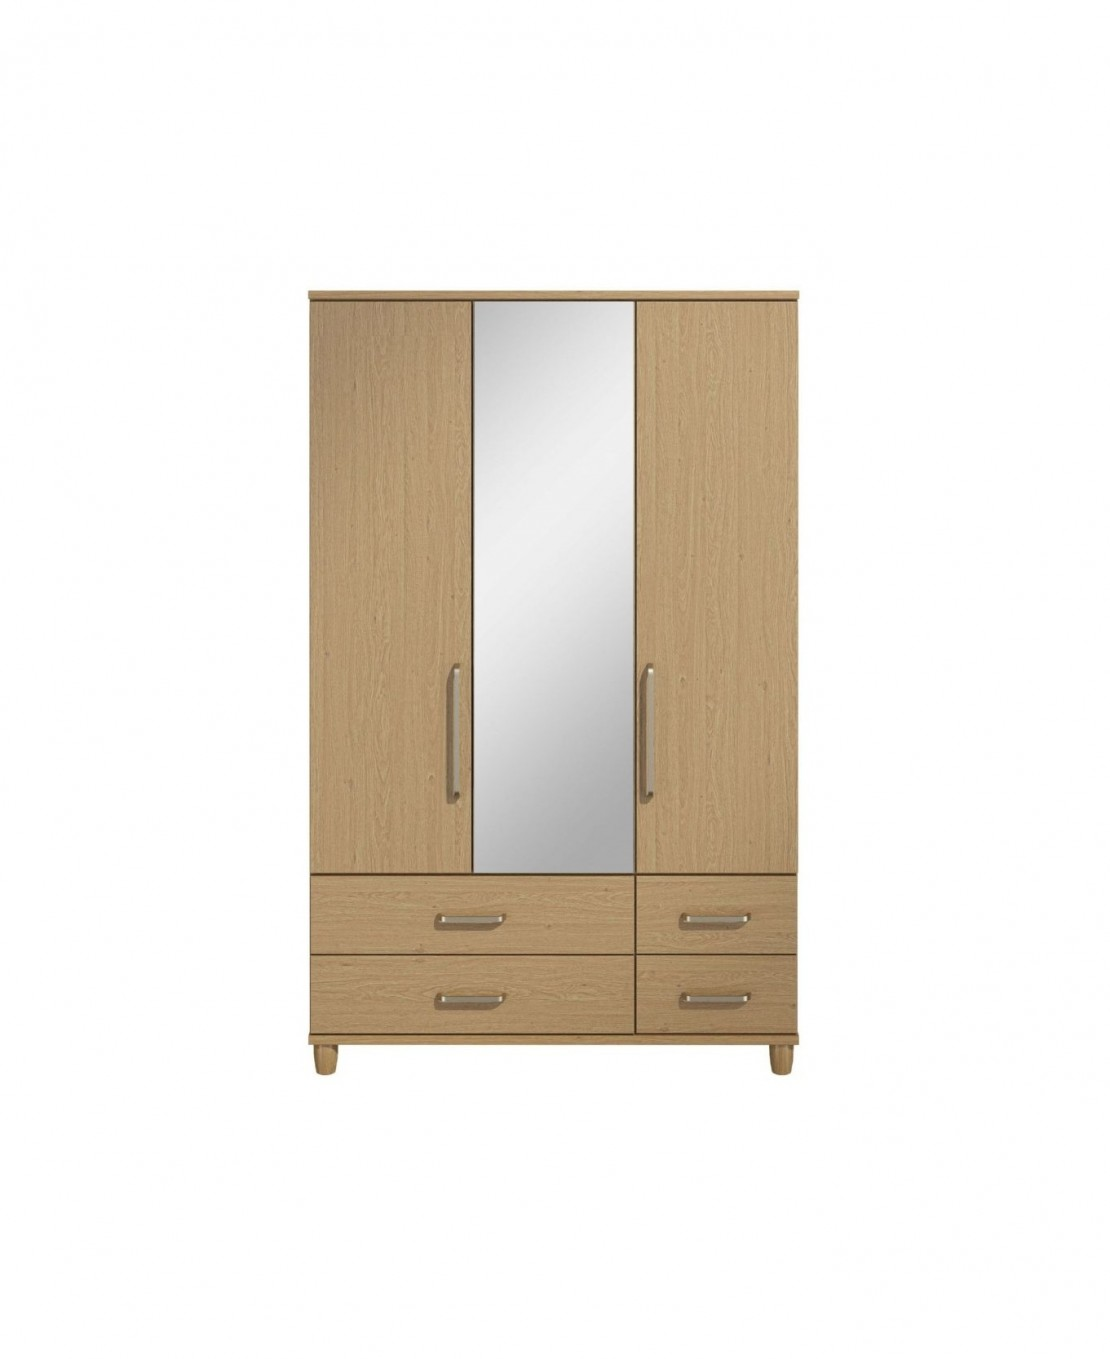 /_images/product-photos/kt-furniture-deco-3-door-centre-mirrored-gents-robe-oak-woodgrain-with-oak-a.jpg